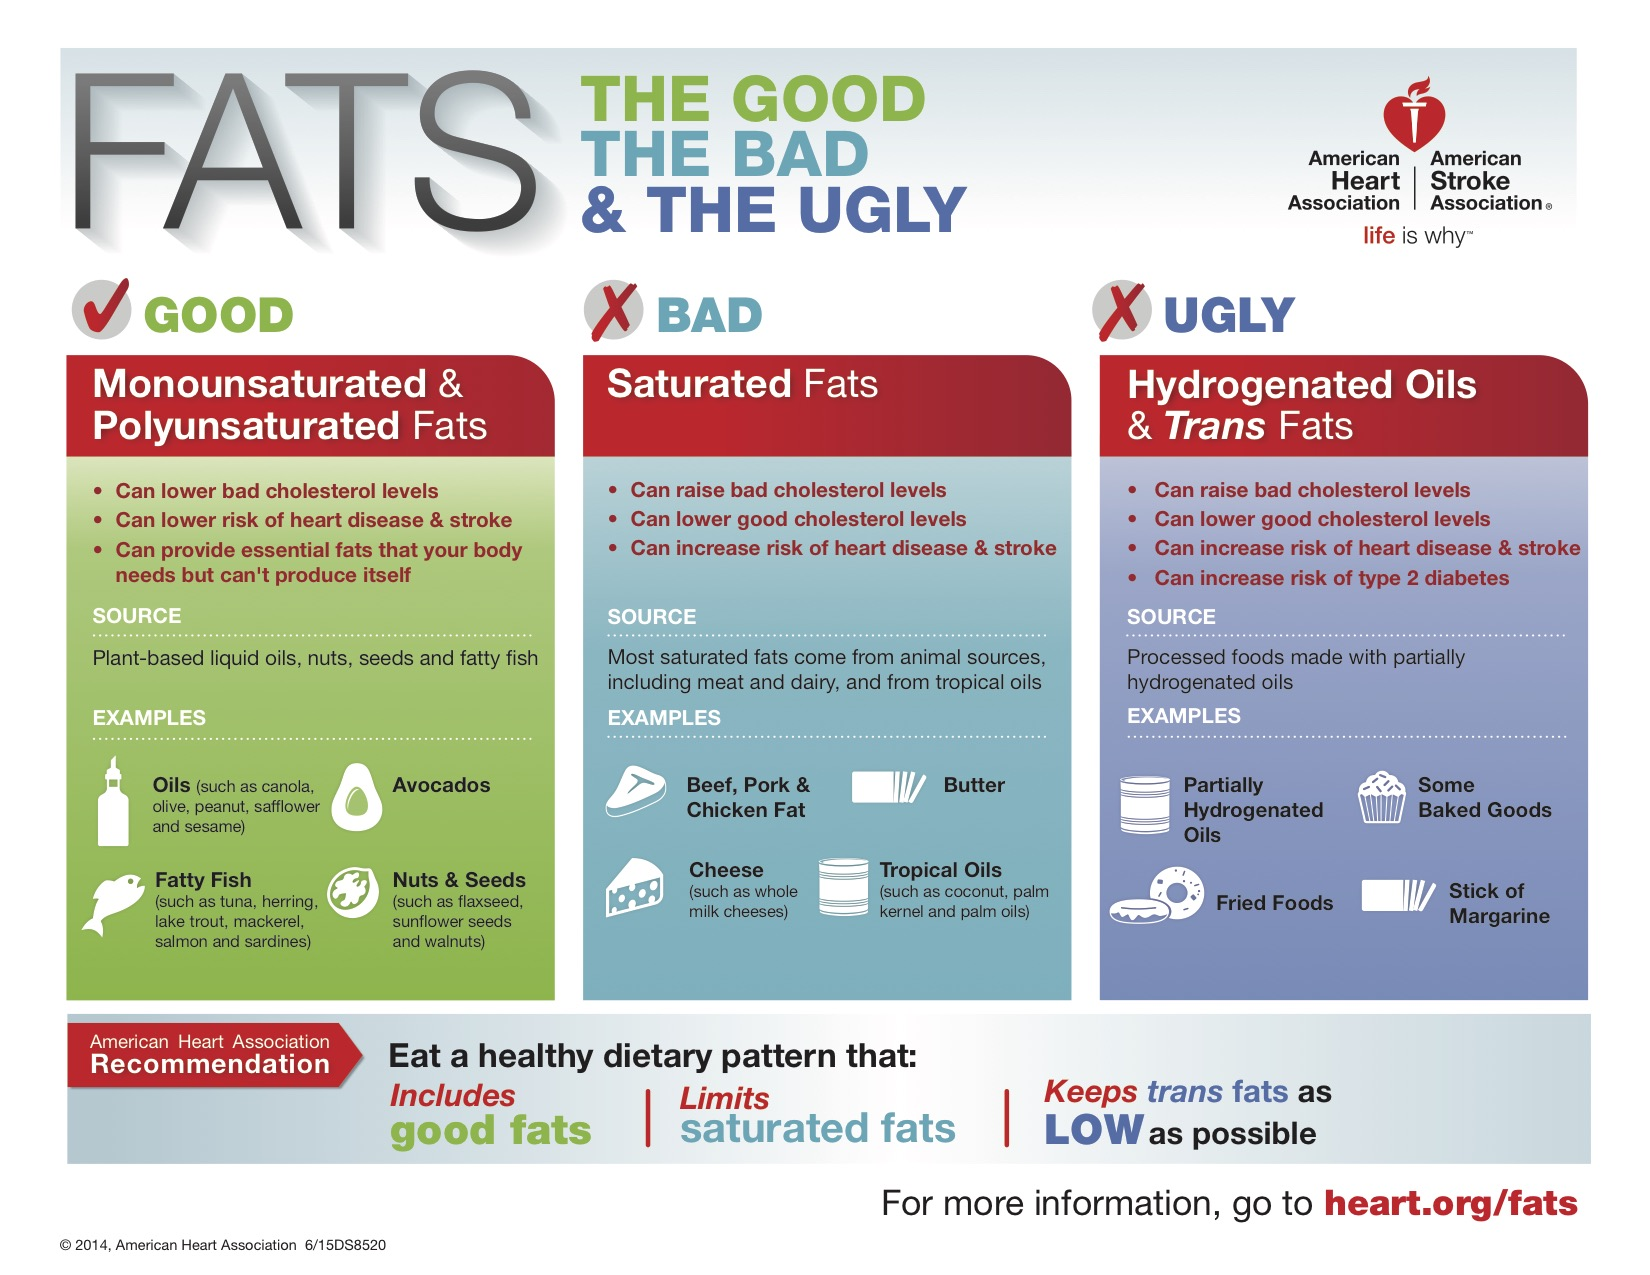 Differences in fats